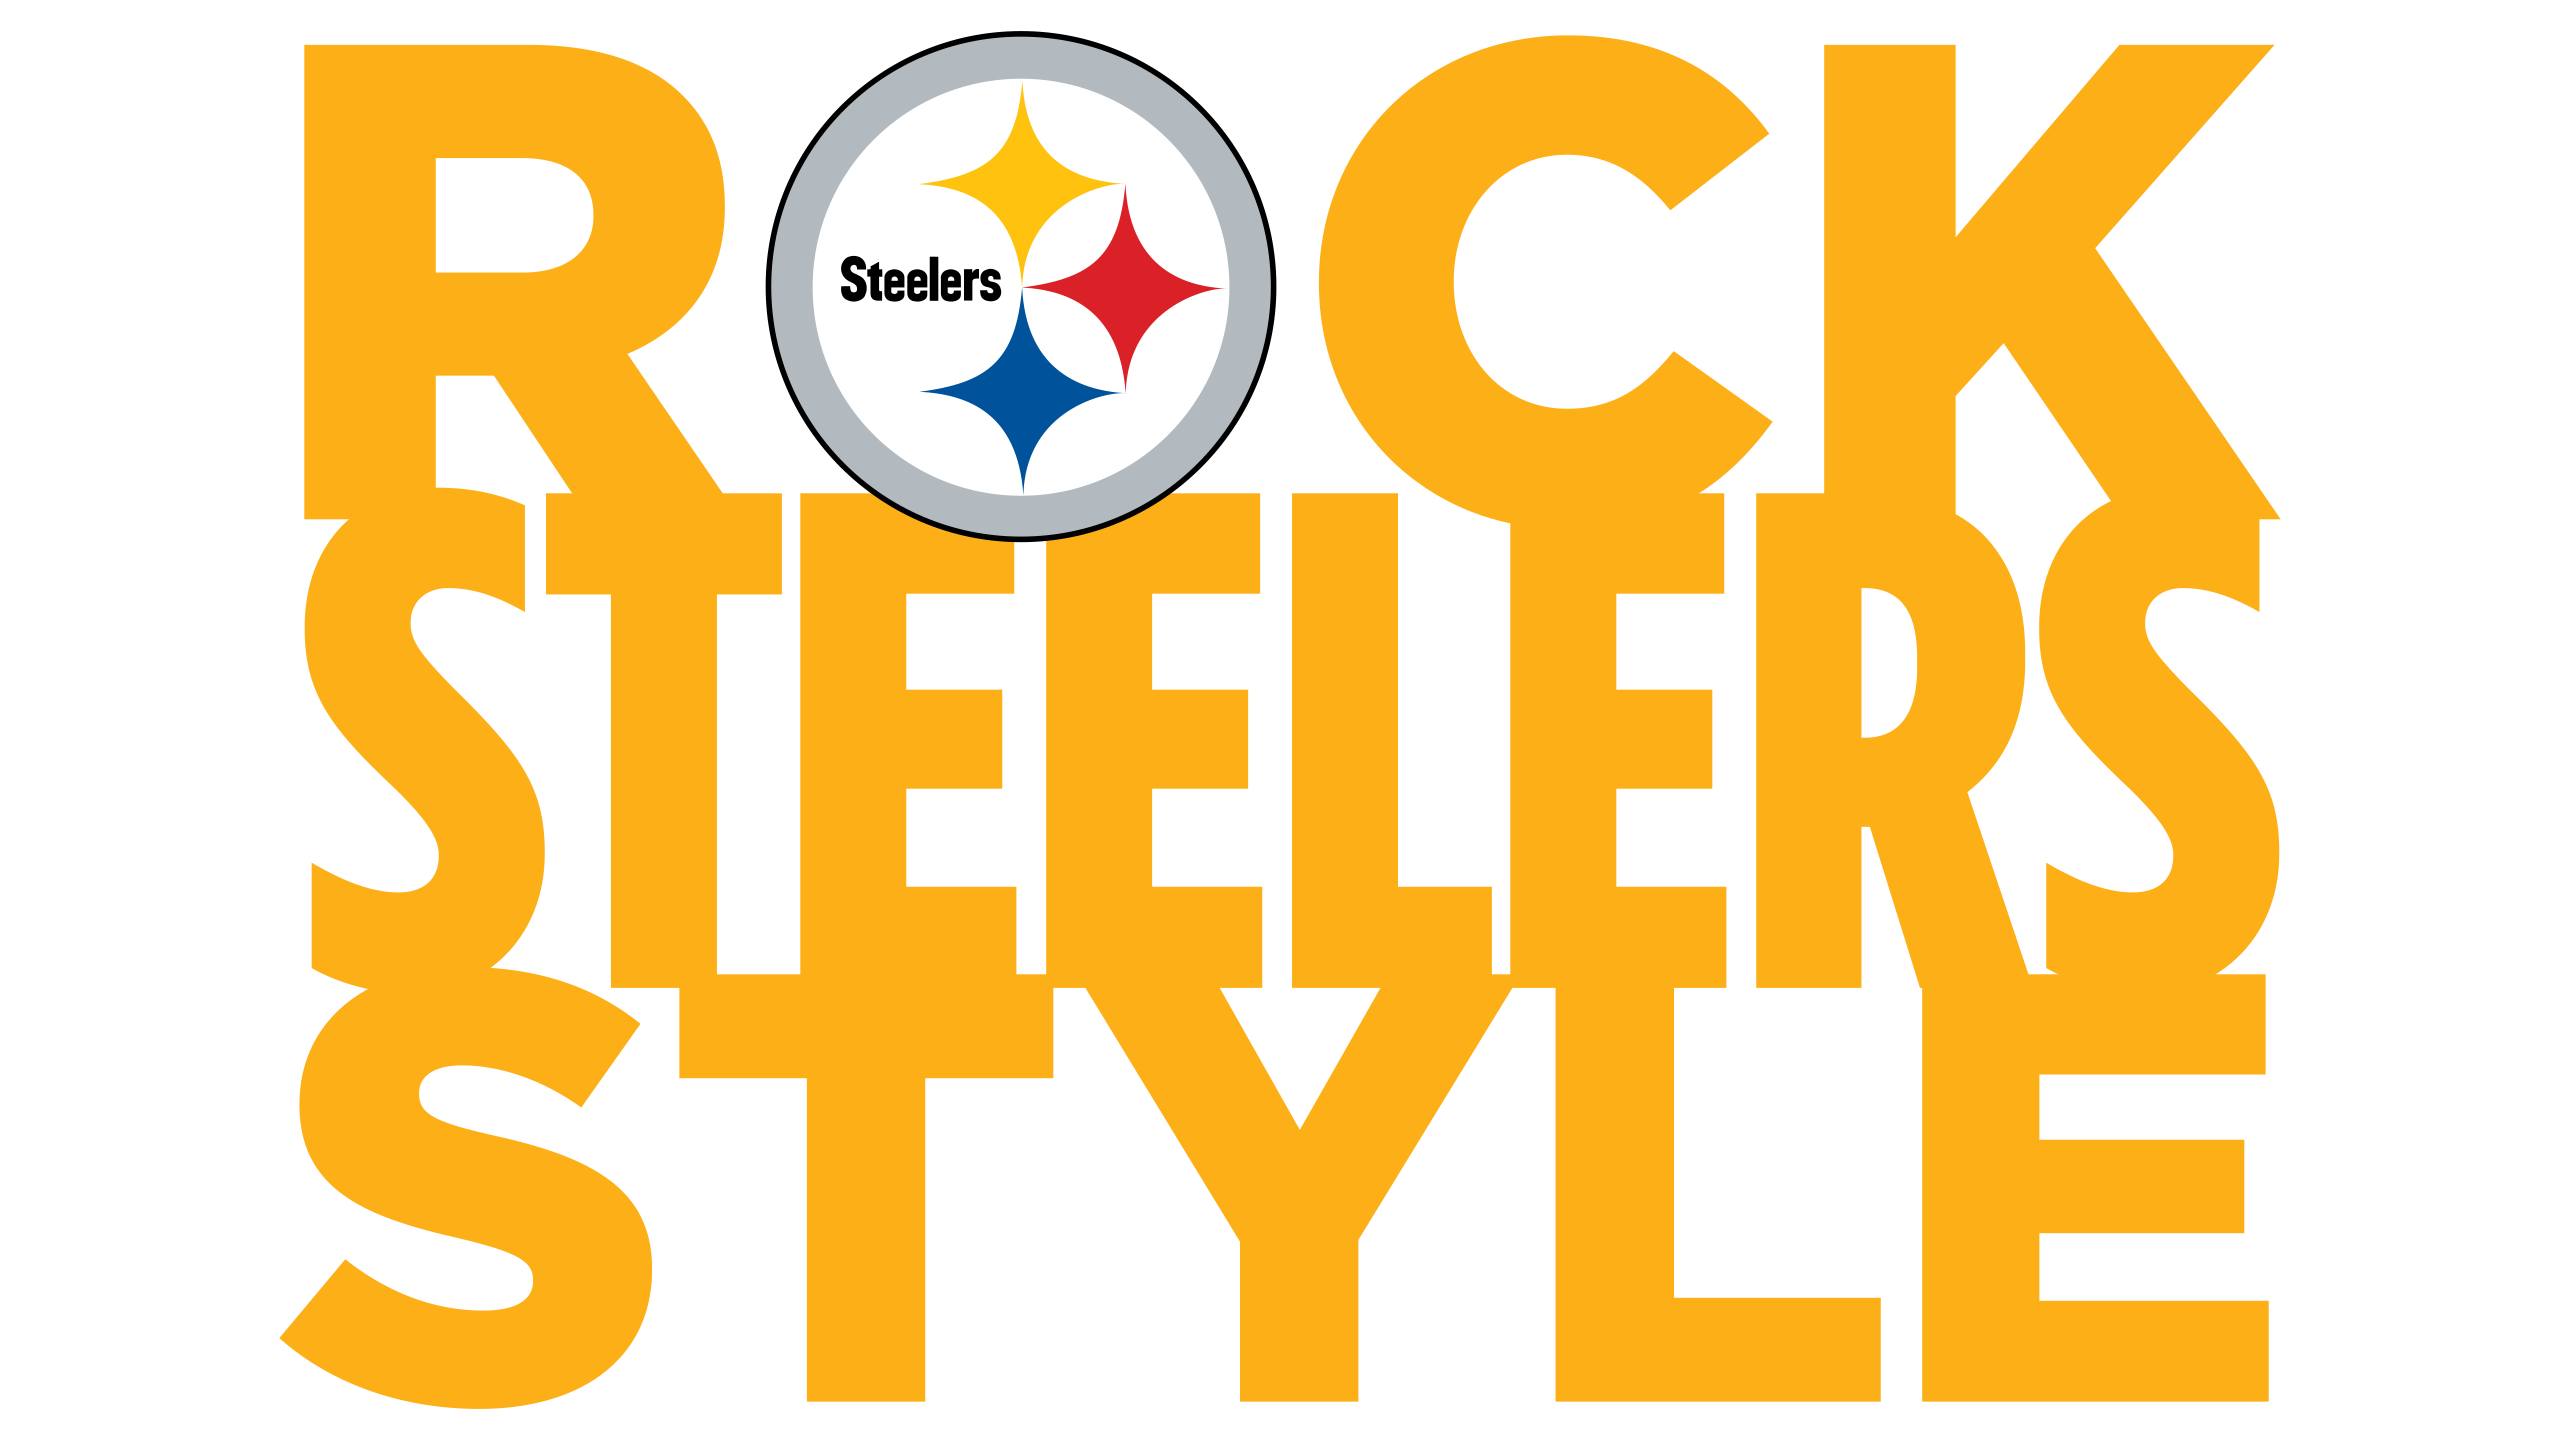 RSS_Rock_Steelers_Style_Fashion_Show_logo_2560x1440